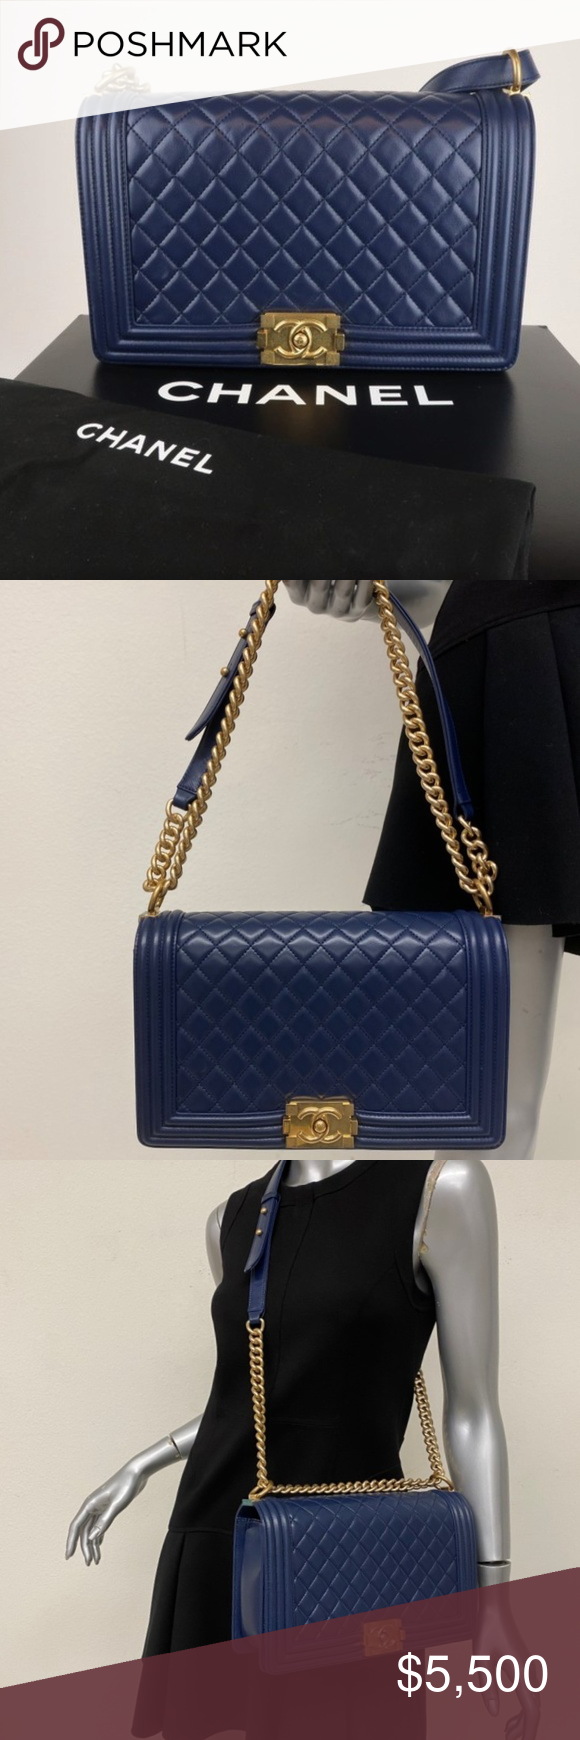 Spotted while shopping on Poshmark: Chanel New Medium Boy Bag Navy Quilted Calfskin! #poshmark #fashion #shopping #style #CHANEL #Handbags